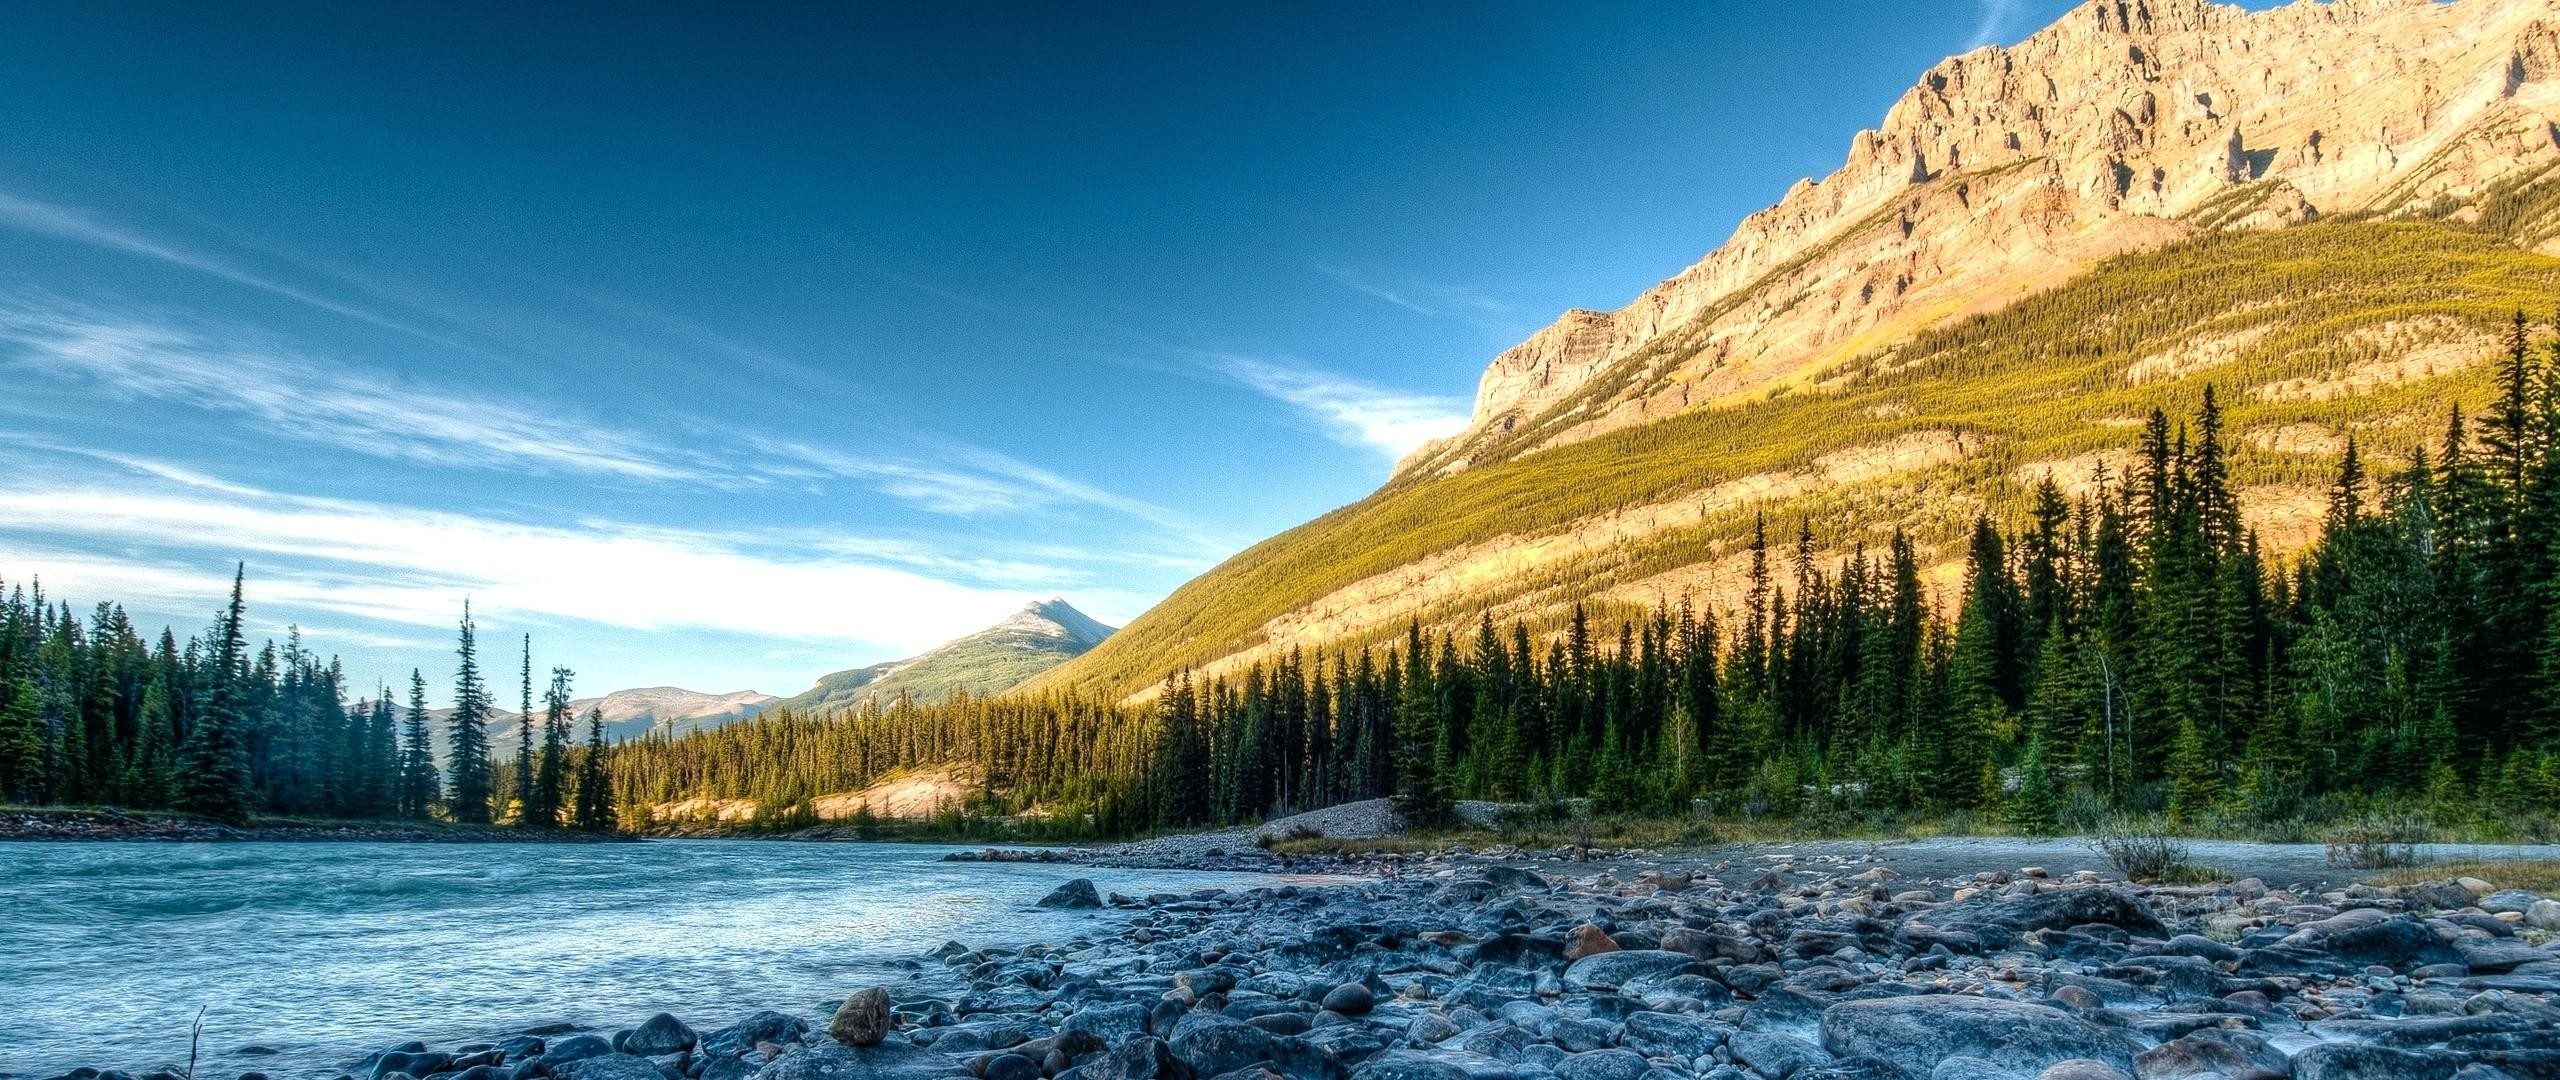 2560x1080 how wide are the rocky mountains wallpaper rocky mountains river stones how  wide are the rocky .